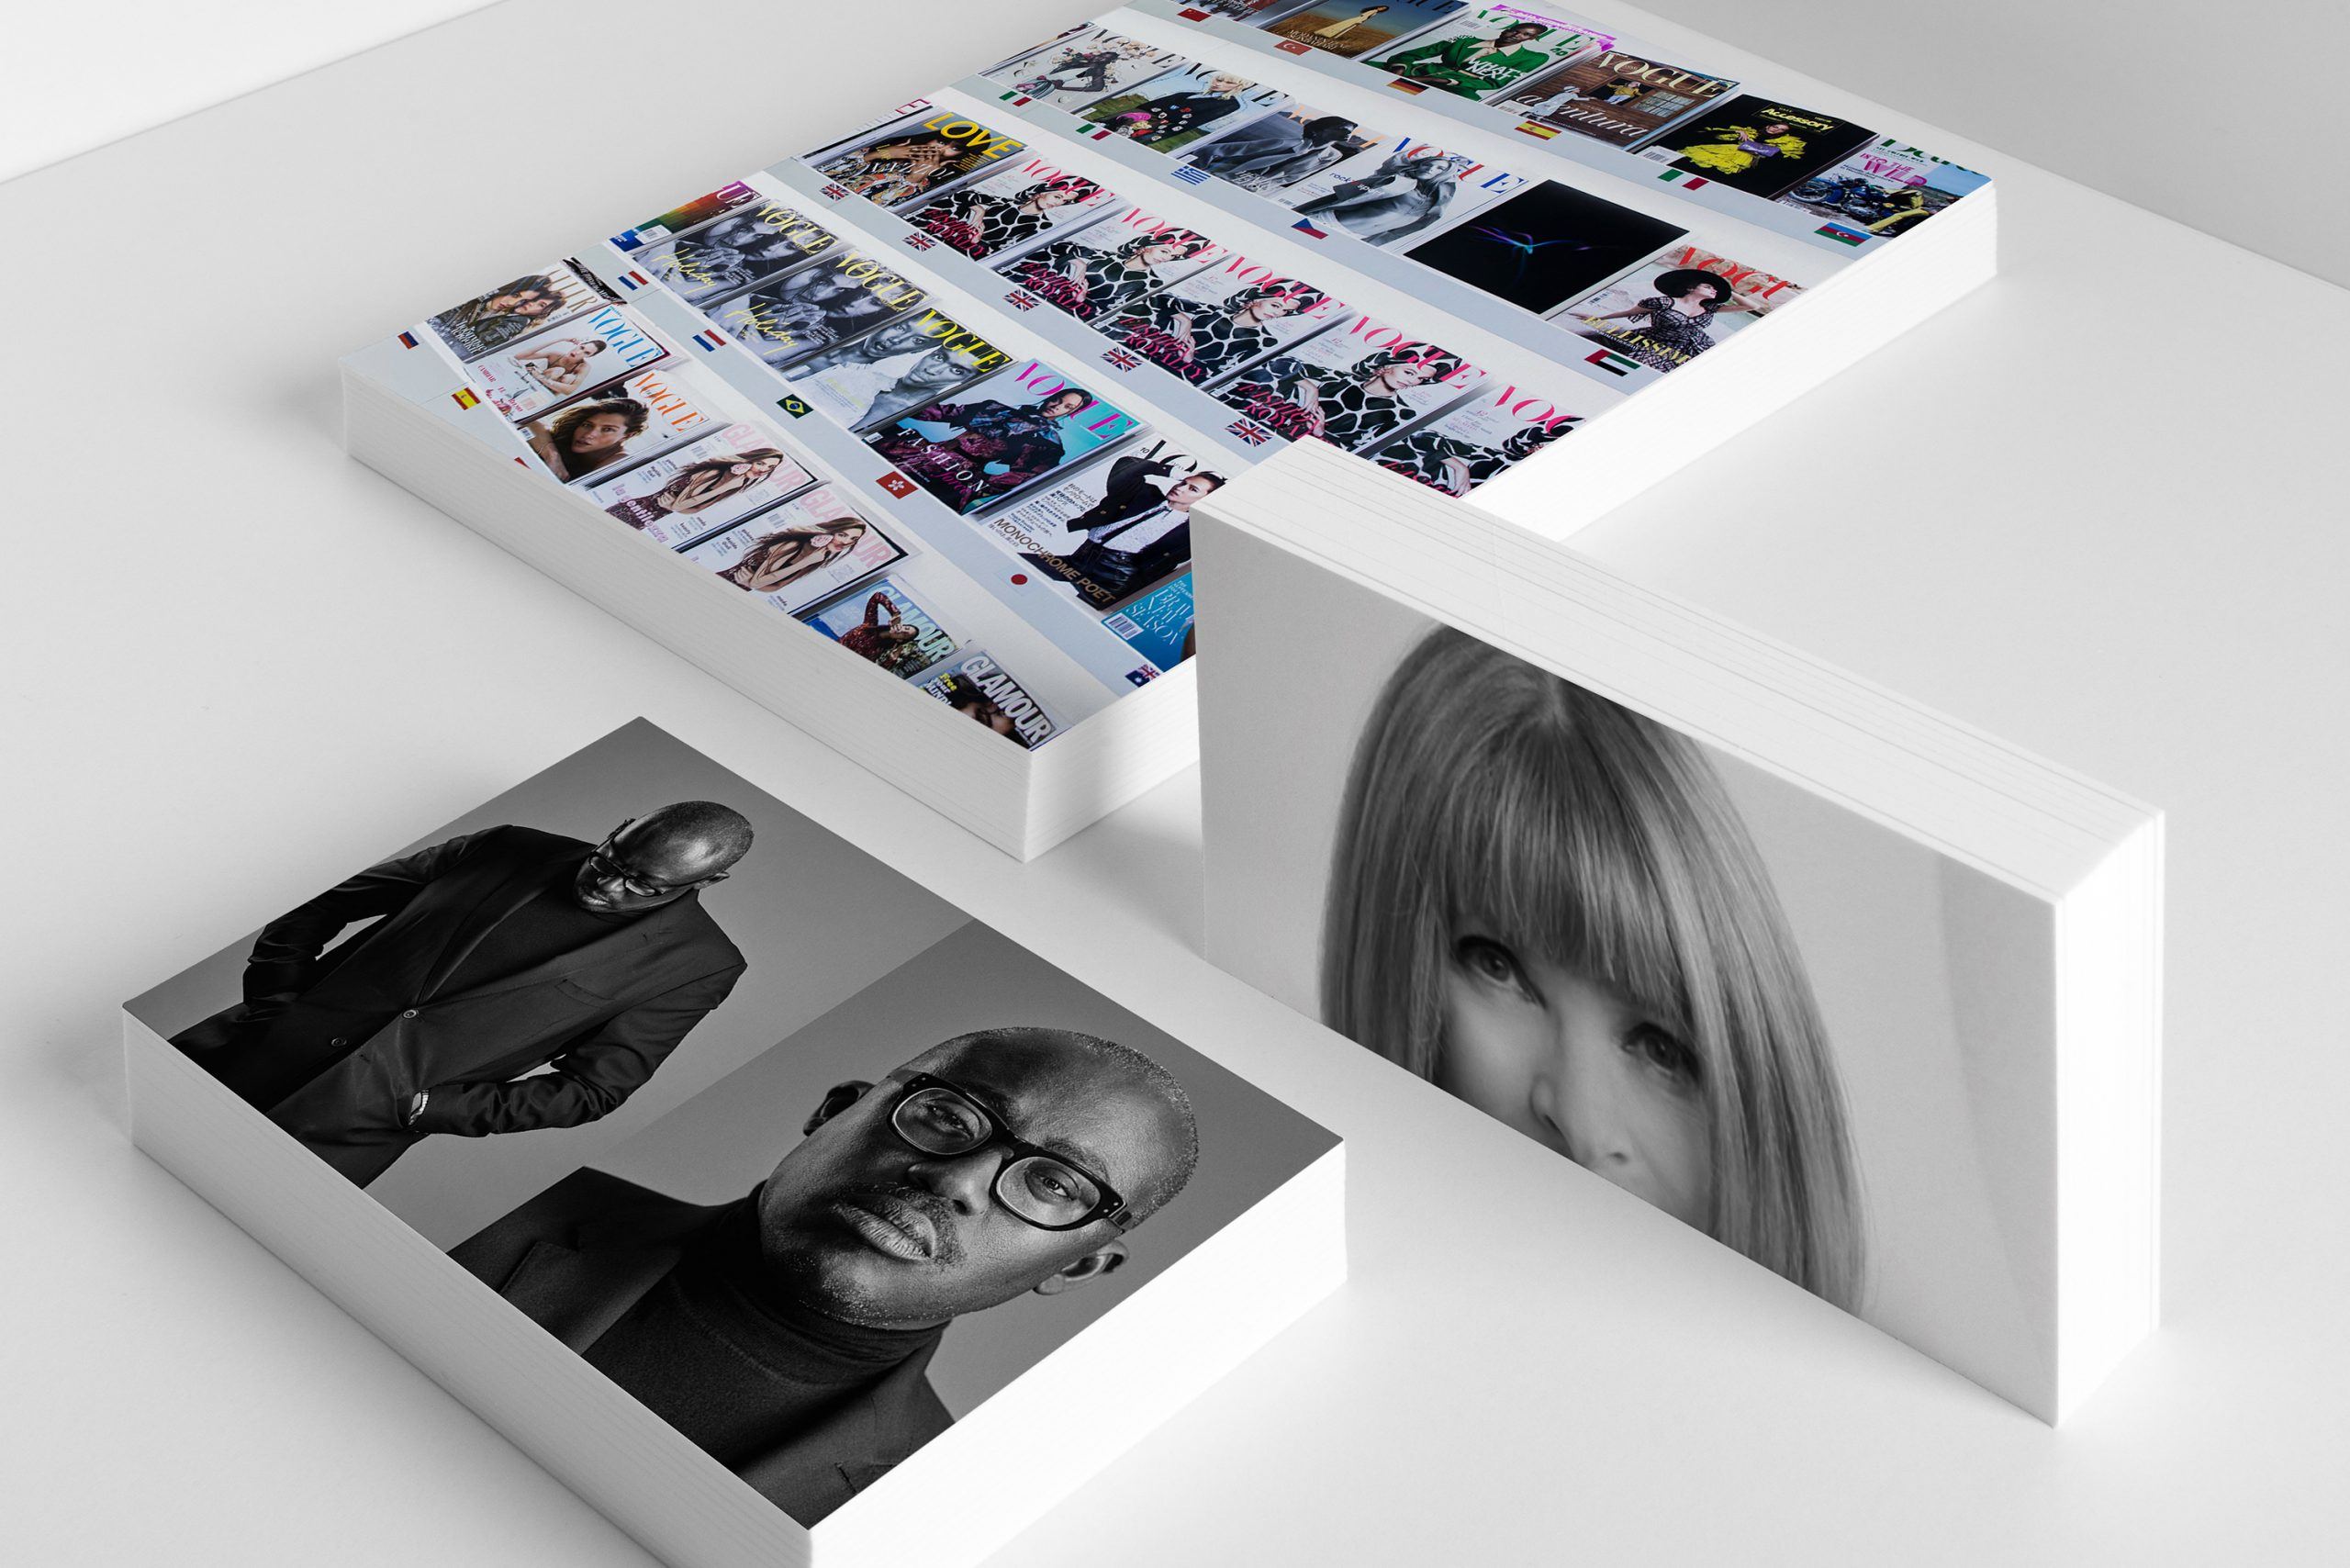 Anna Wintour Edward Enninful Promoted In Condé Nast Global Restructure